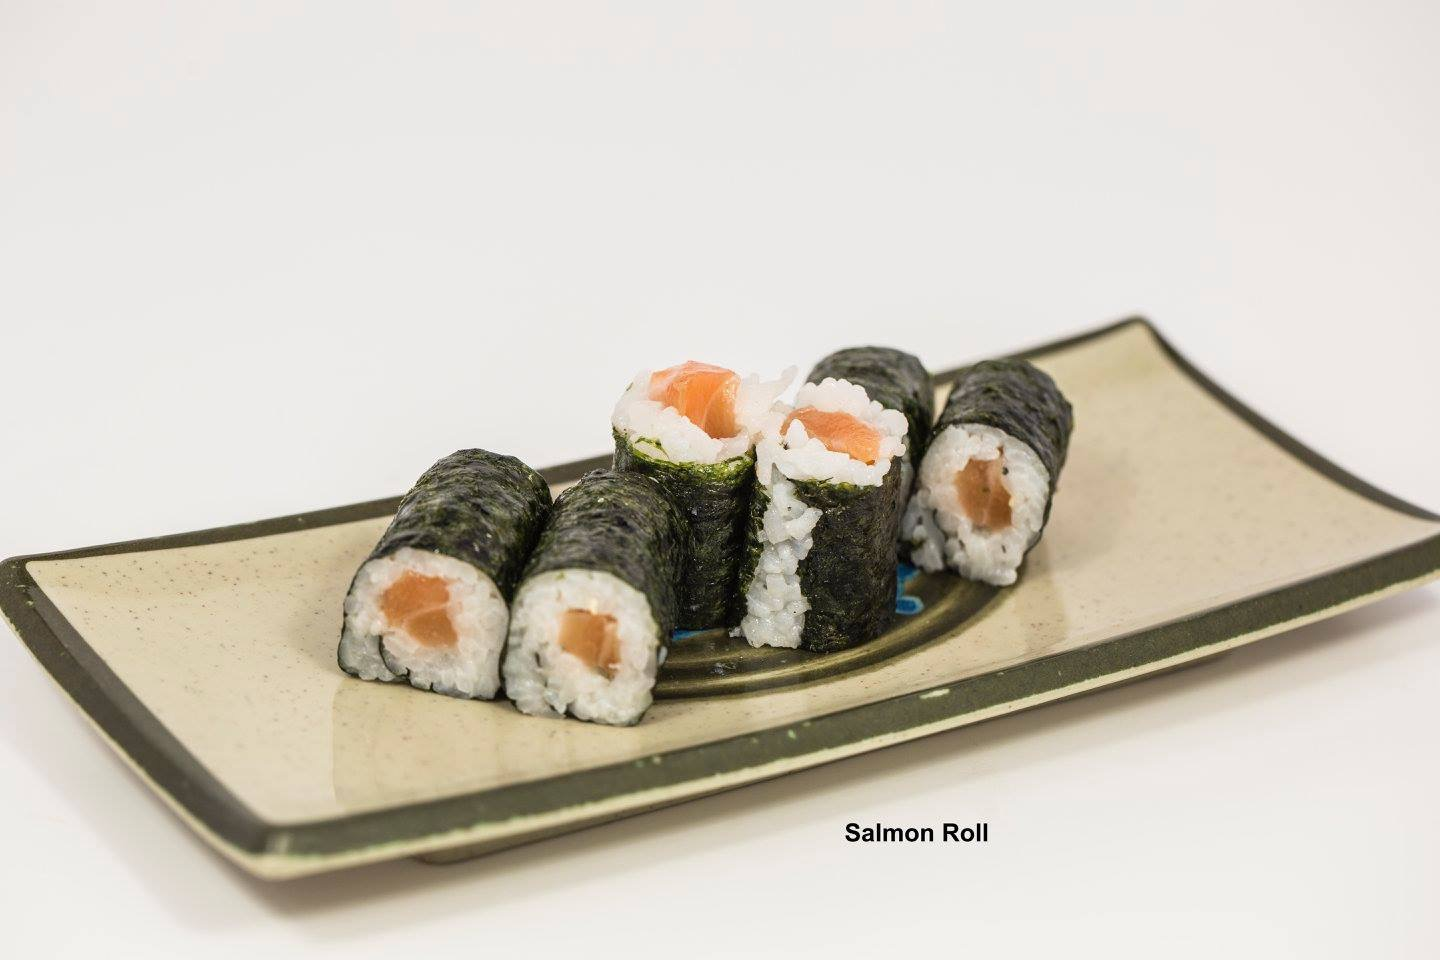 Salmon Roll Image